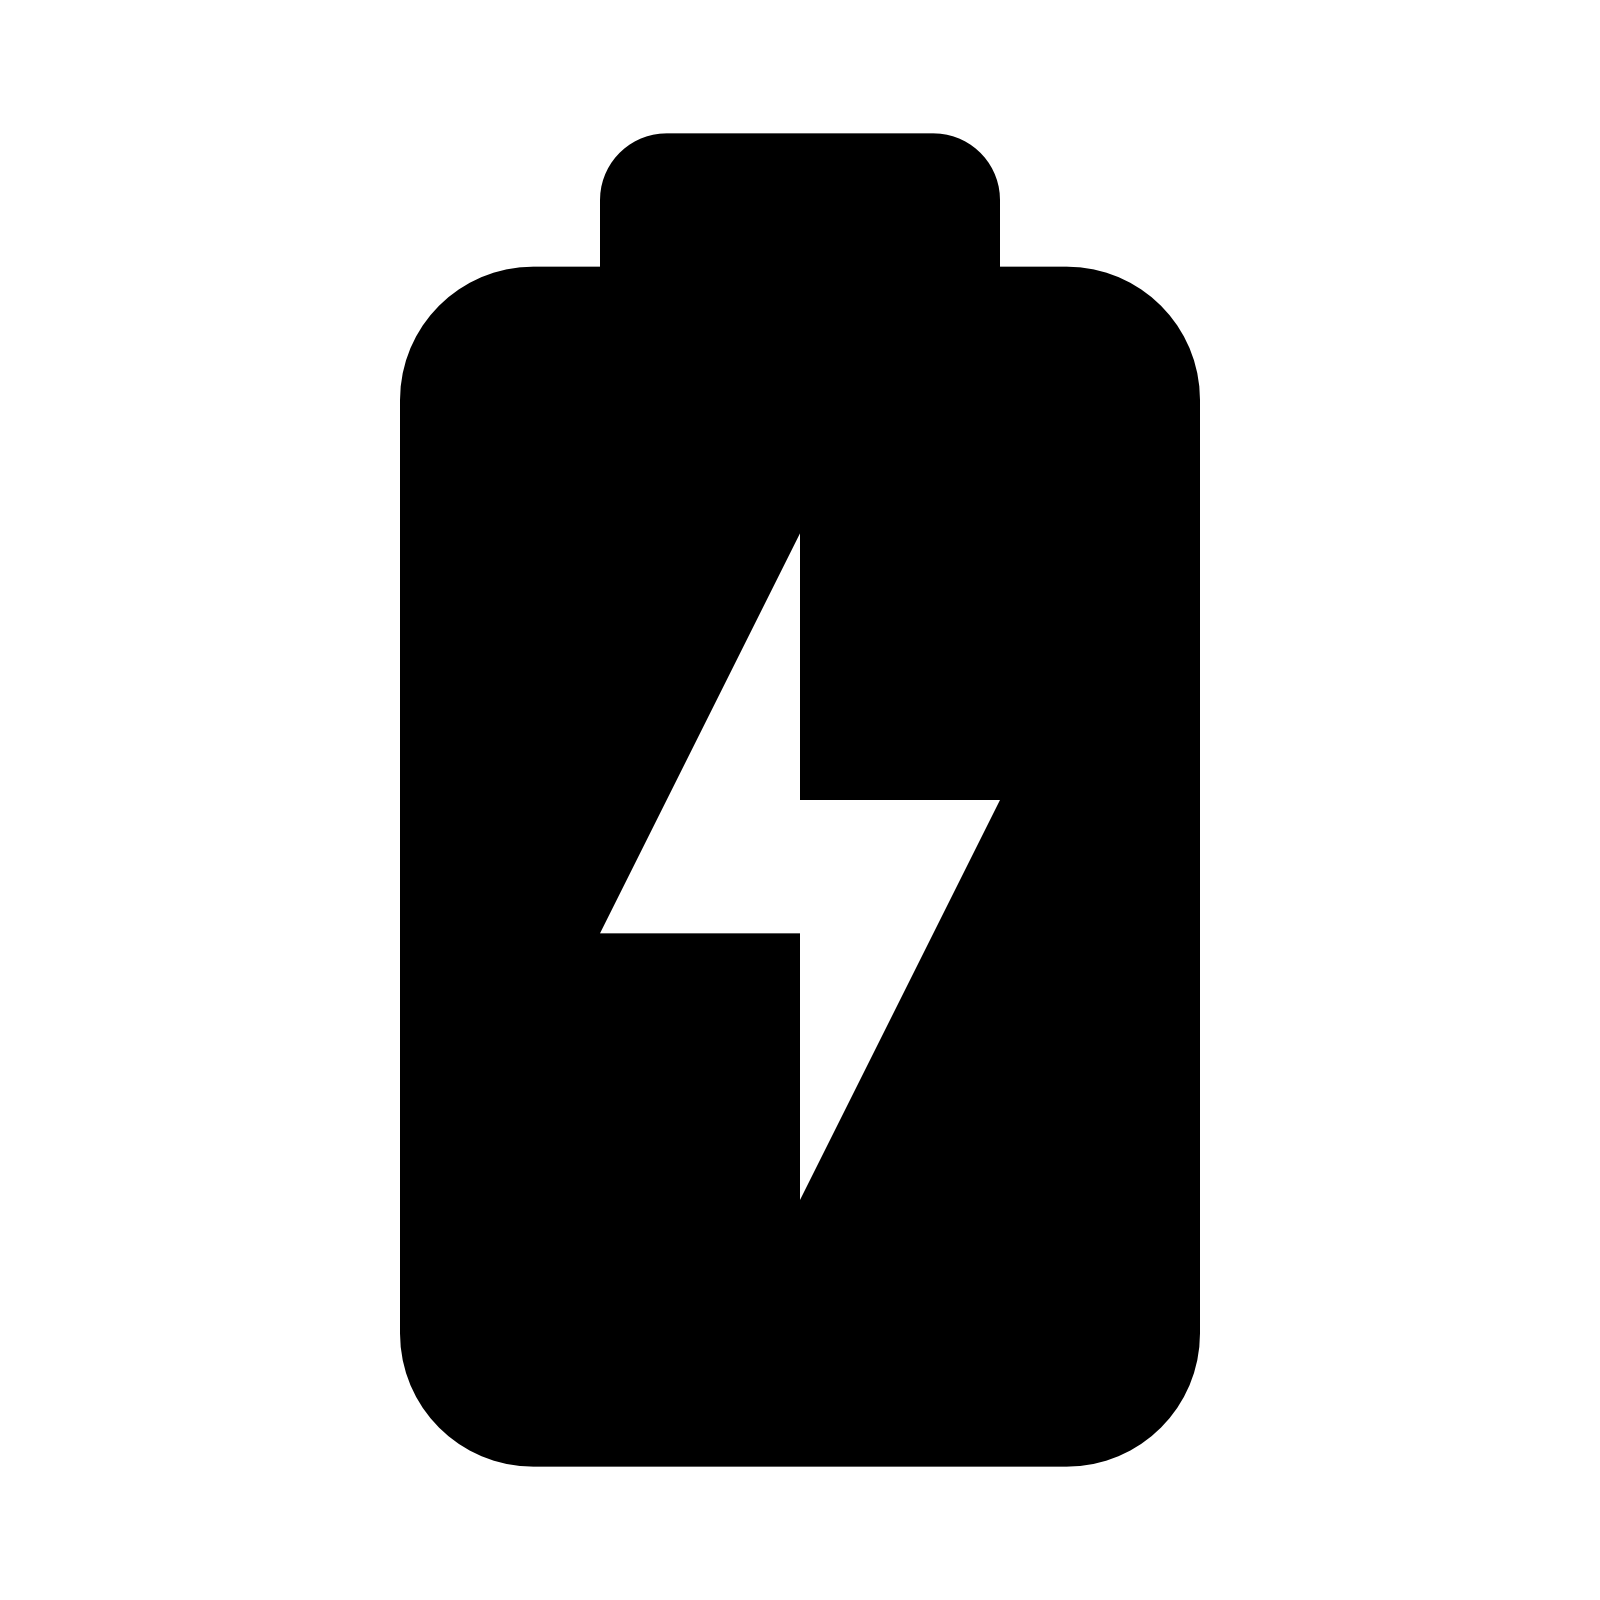 Battery Charging PNG - 19271